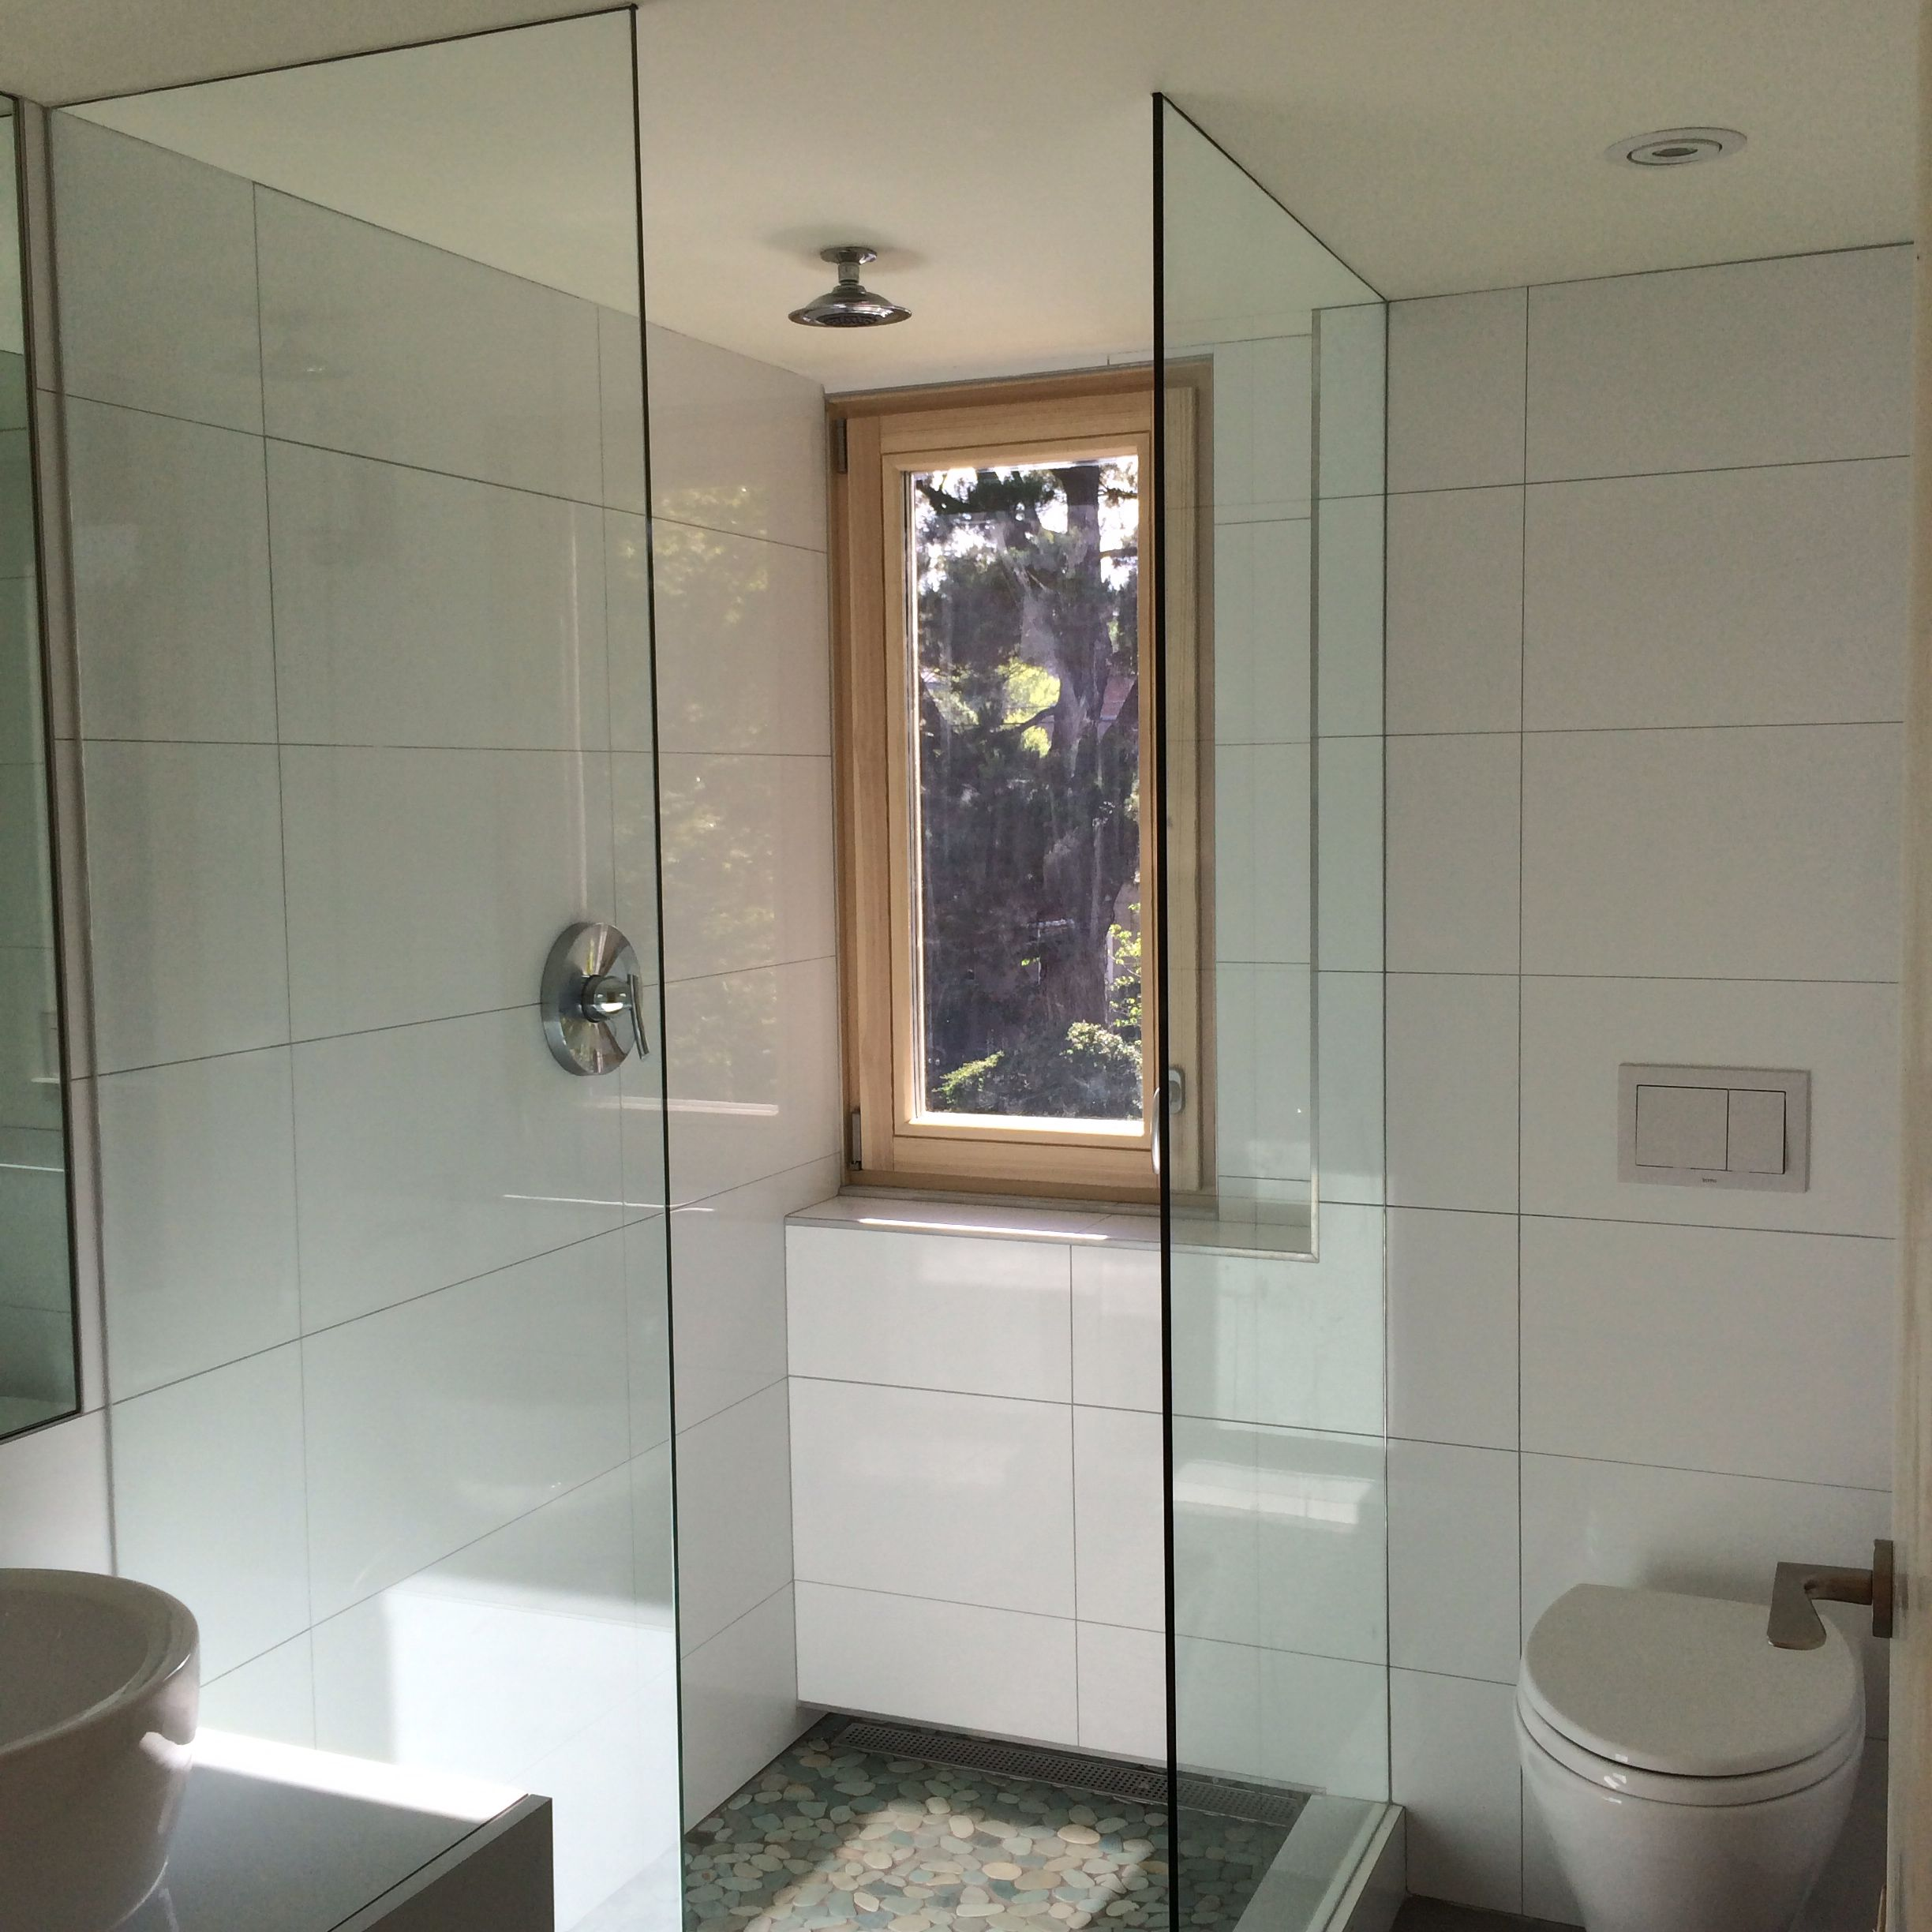 Oversized High Gloss White Tile Bathroom Walls With Washed Green Pebble Floors And Recessed Tem White Tile Bathroom Walls White Wash Walls White Bathroom Tiles